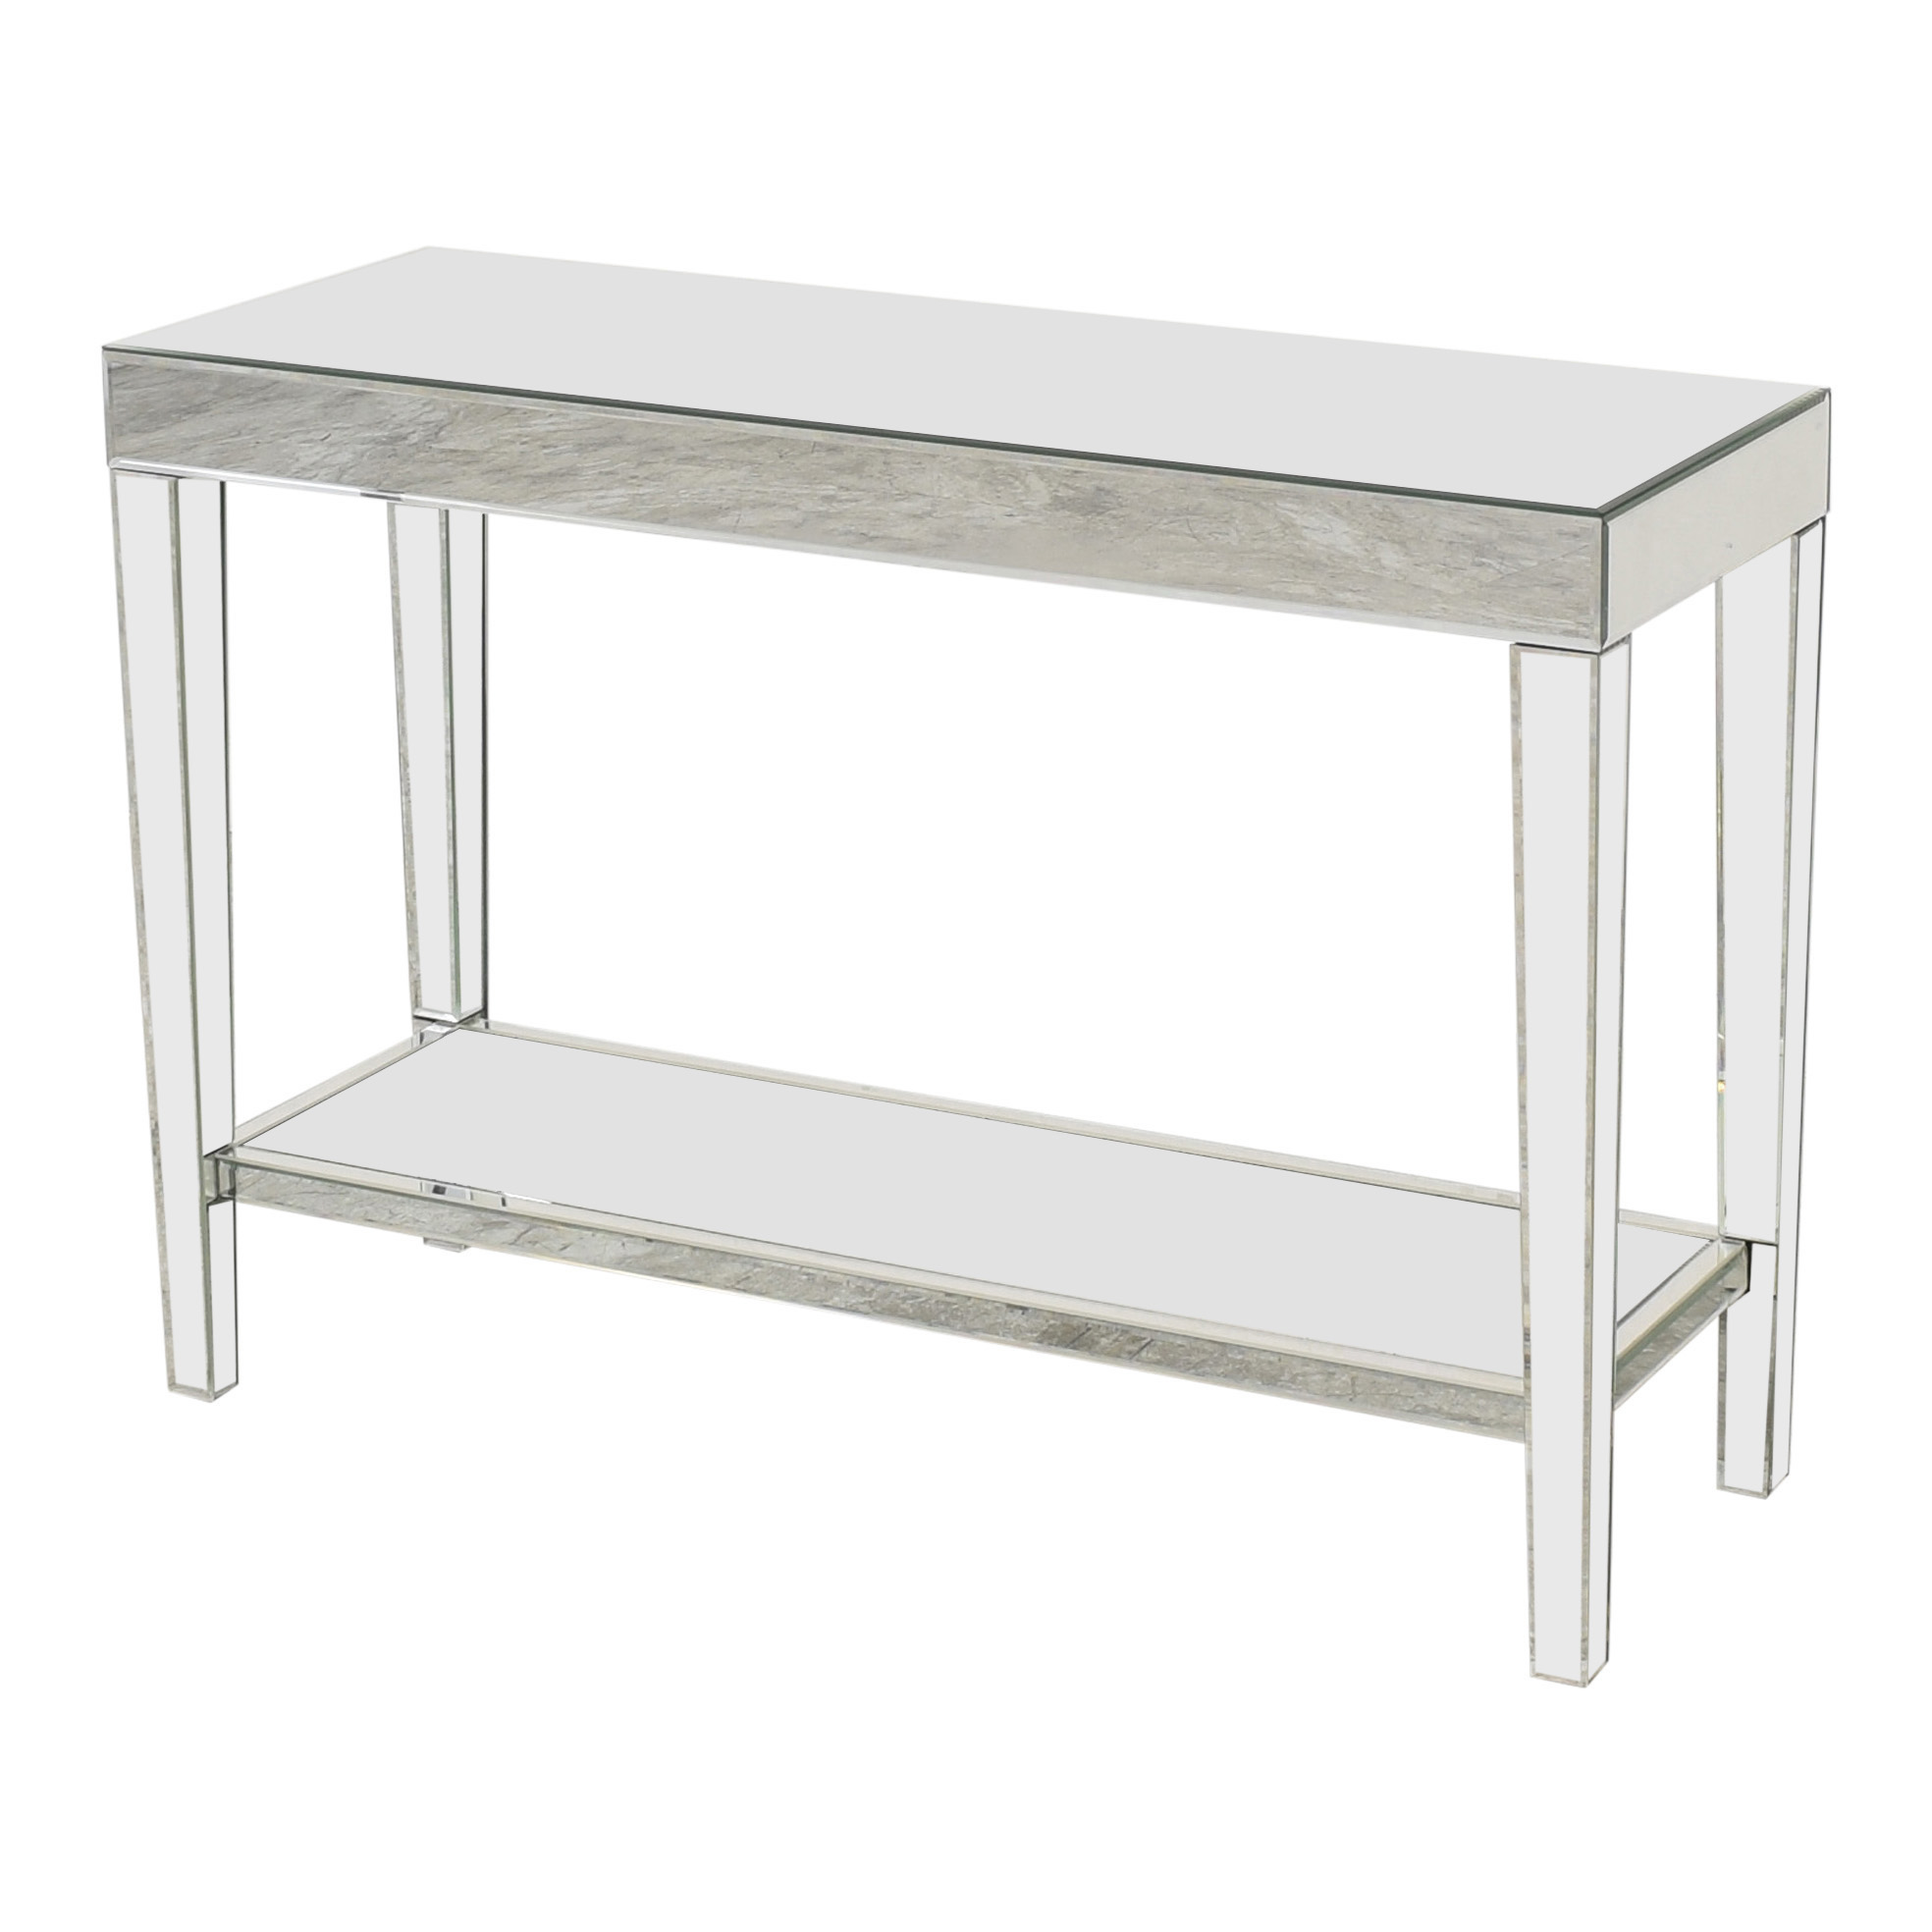 buy Howard Elliott Orion Mirrored Console Table With Shelf Howard Elliot Collection Accent Tables